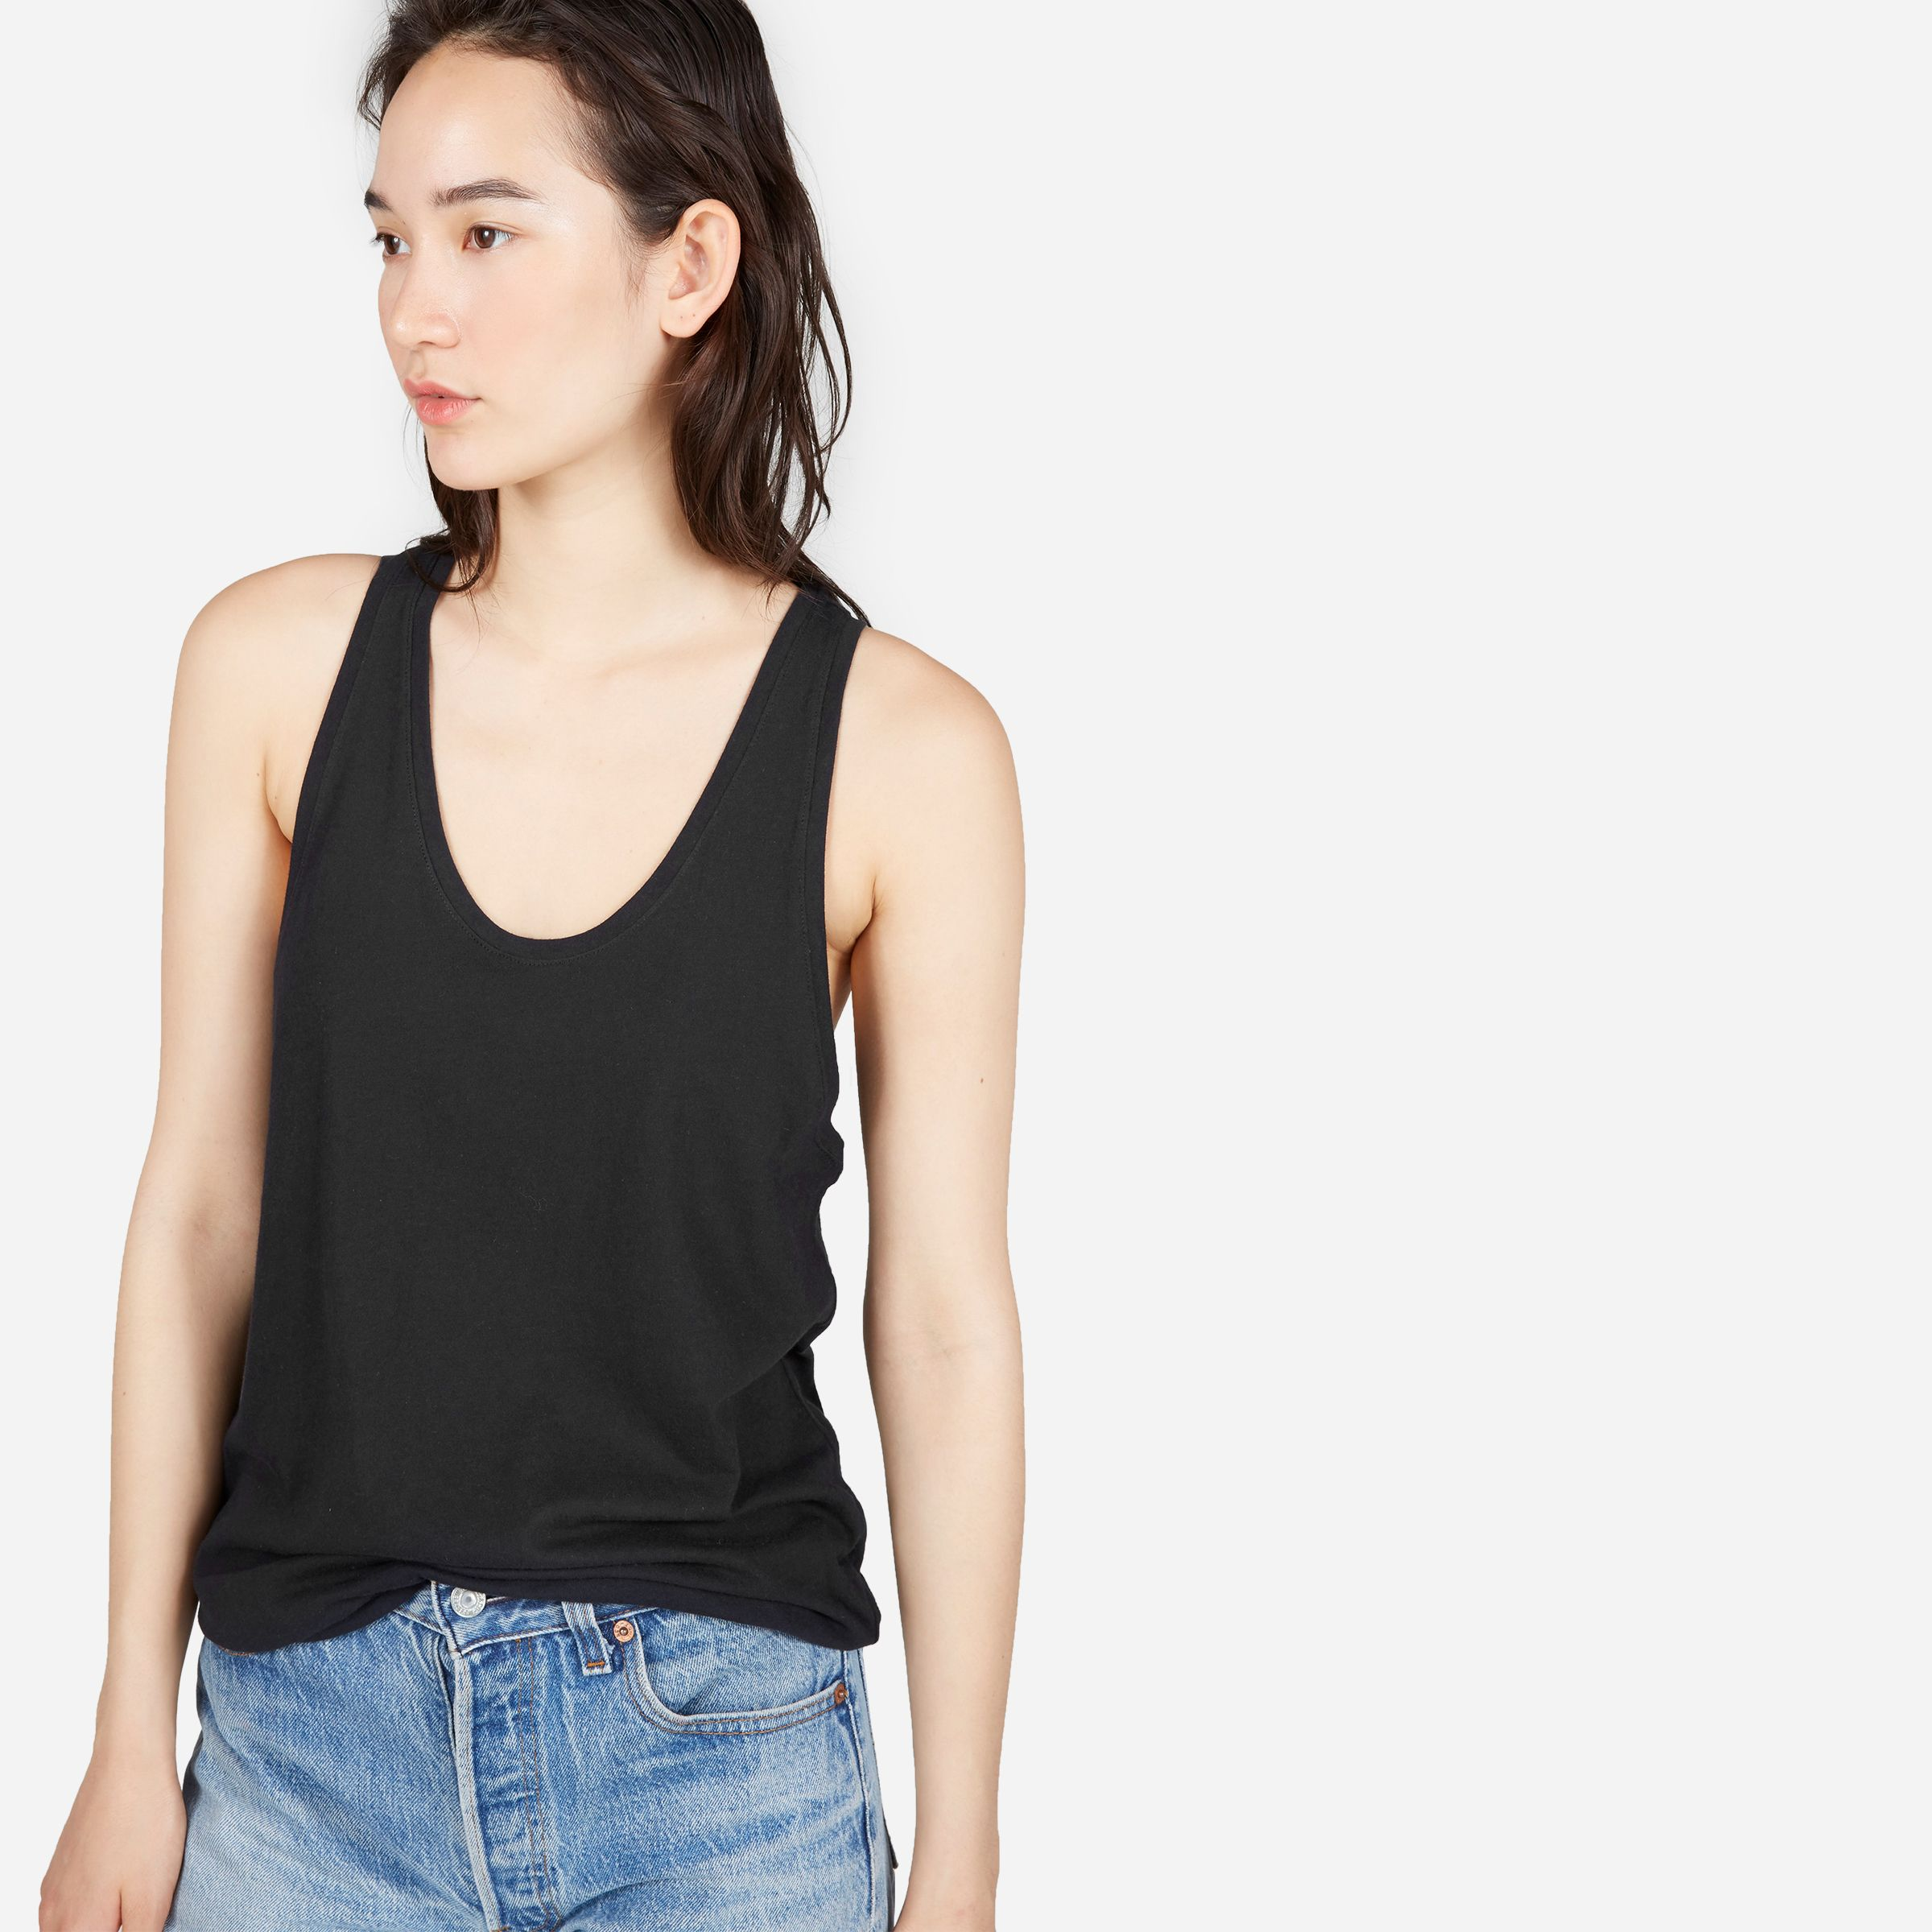 Lightweight and layerable. This cotton racerback tank has generously cut armholes, so you can stay cool on the warmest days. Just pair with your favorite bralette.